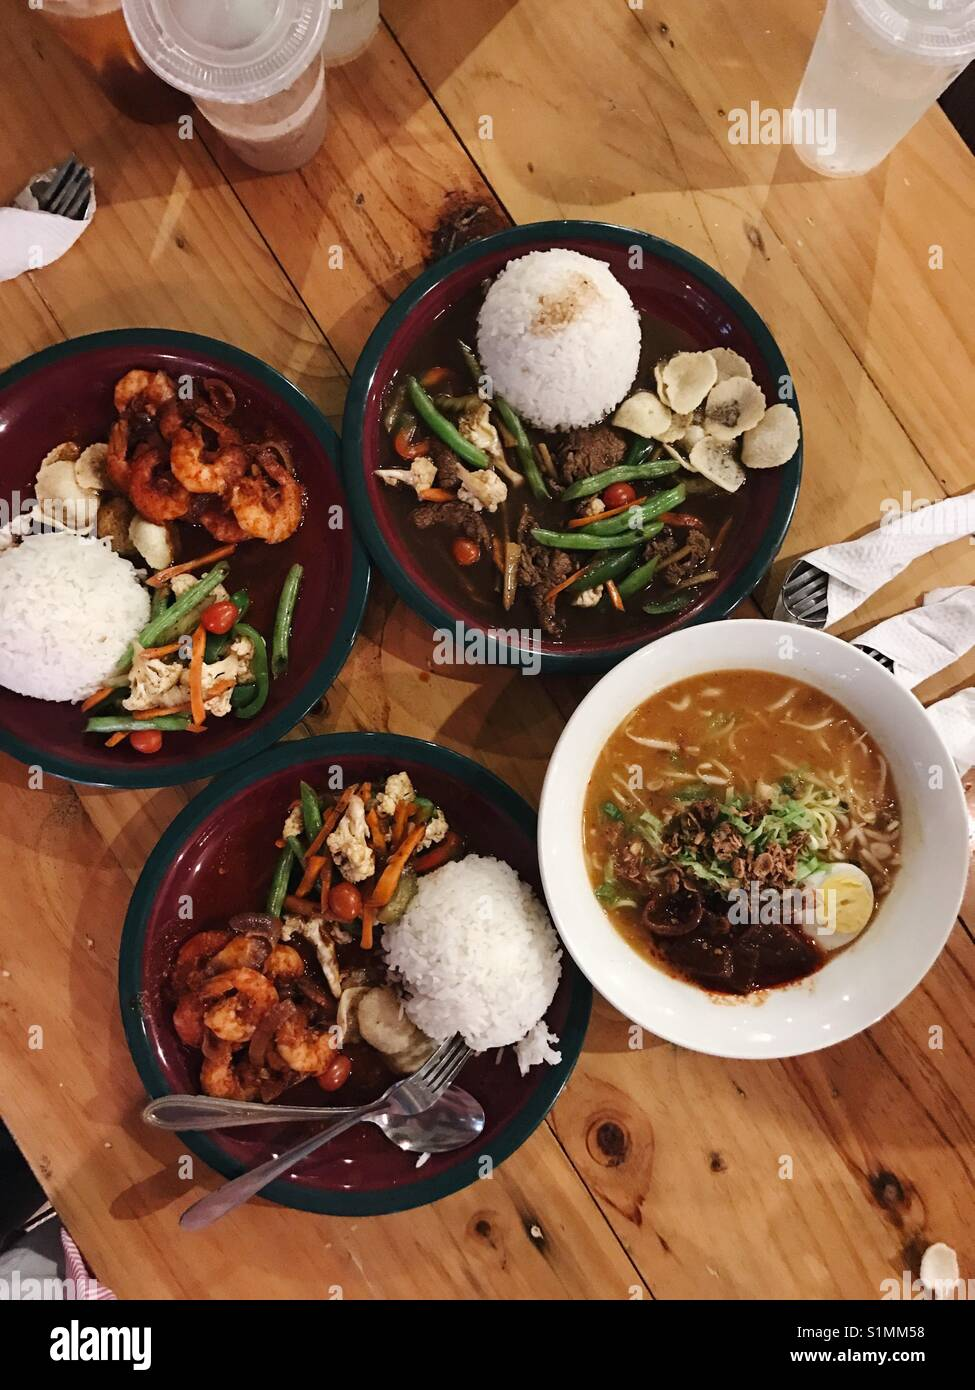 Malaysian Food - Stock Image